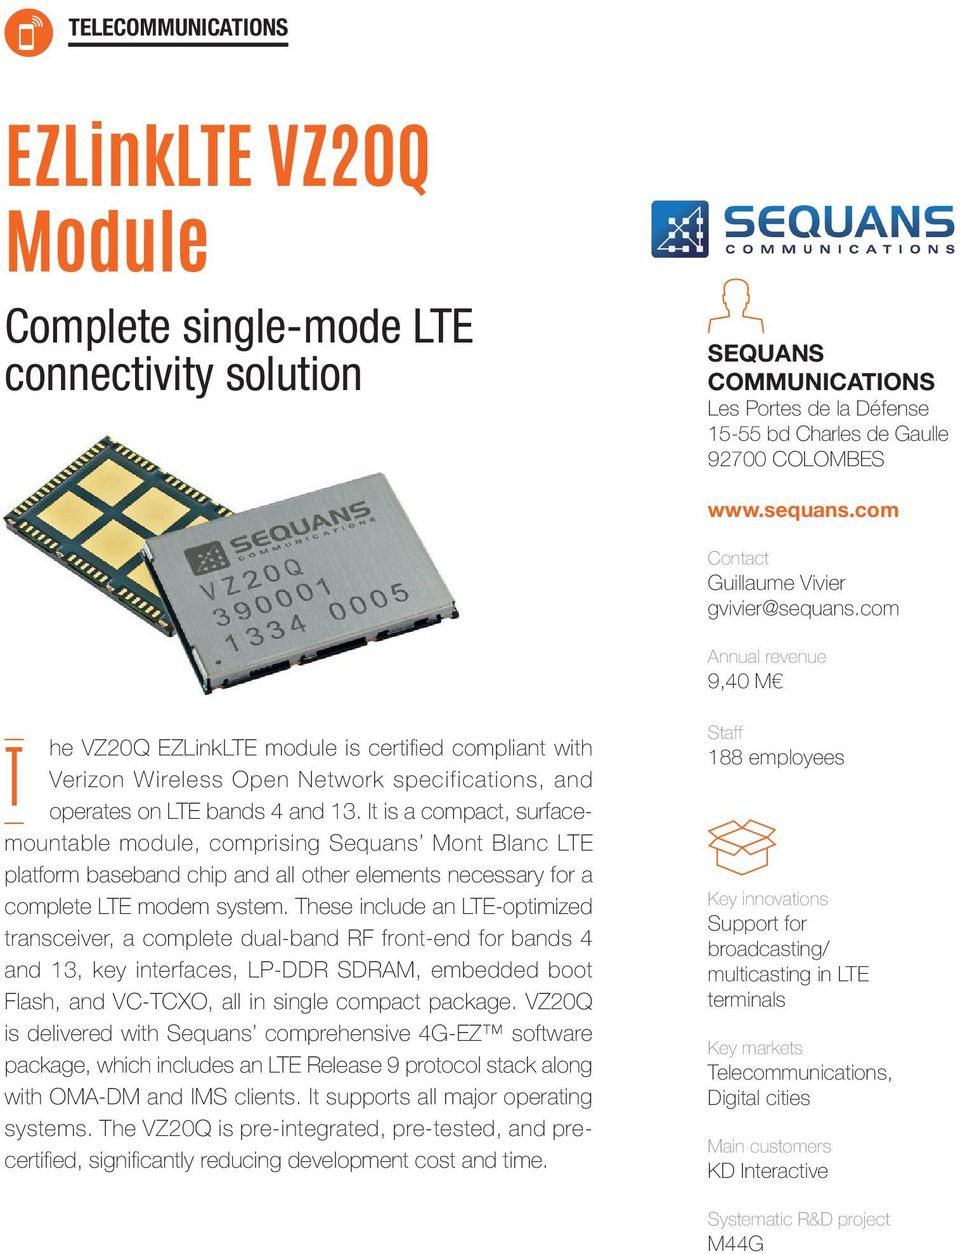 It is a compact, surfacemountable module, comprising Sequans Mont Blanc LTE platform baseband chip and all other elements necessary for a complete LTE modem system.